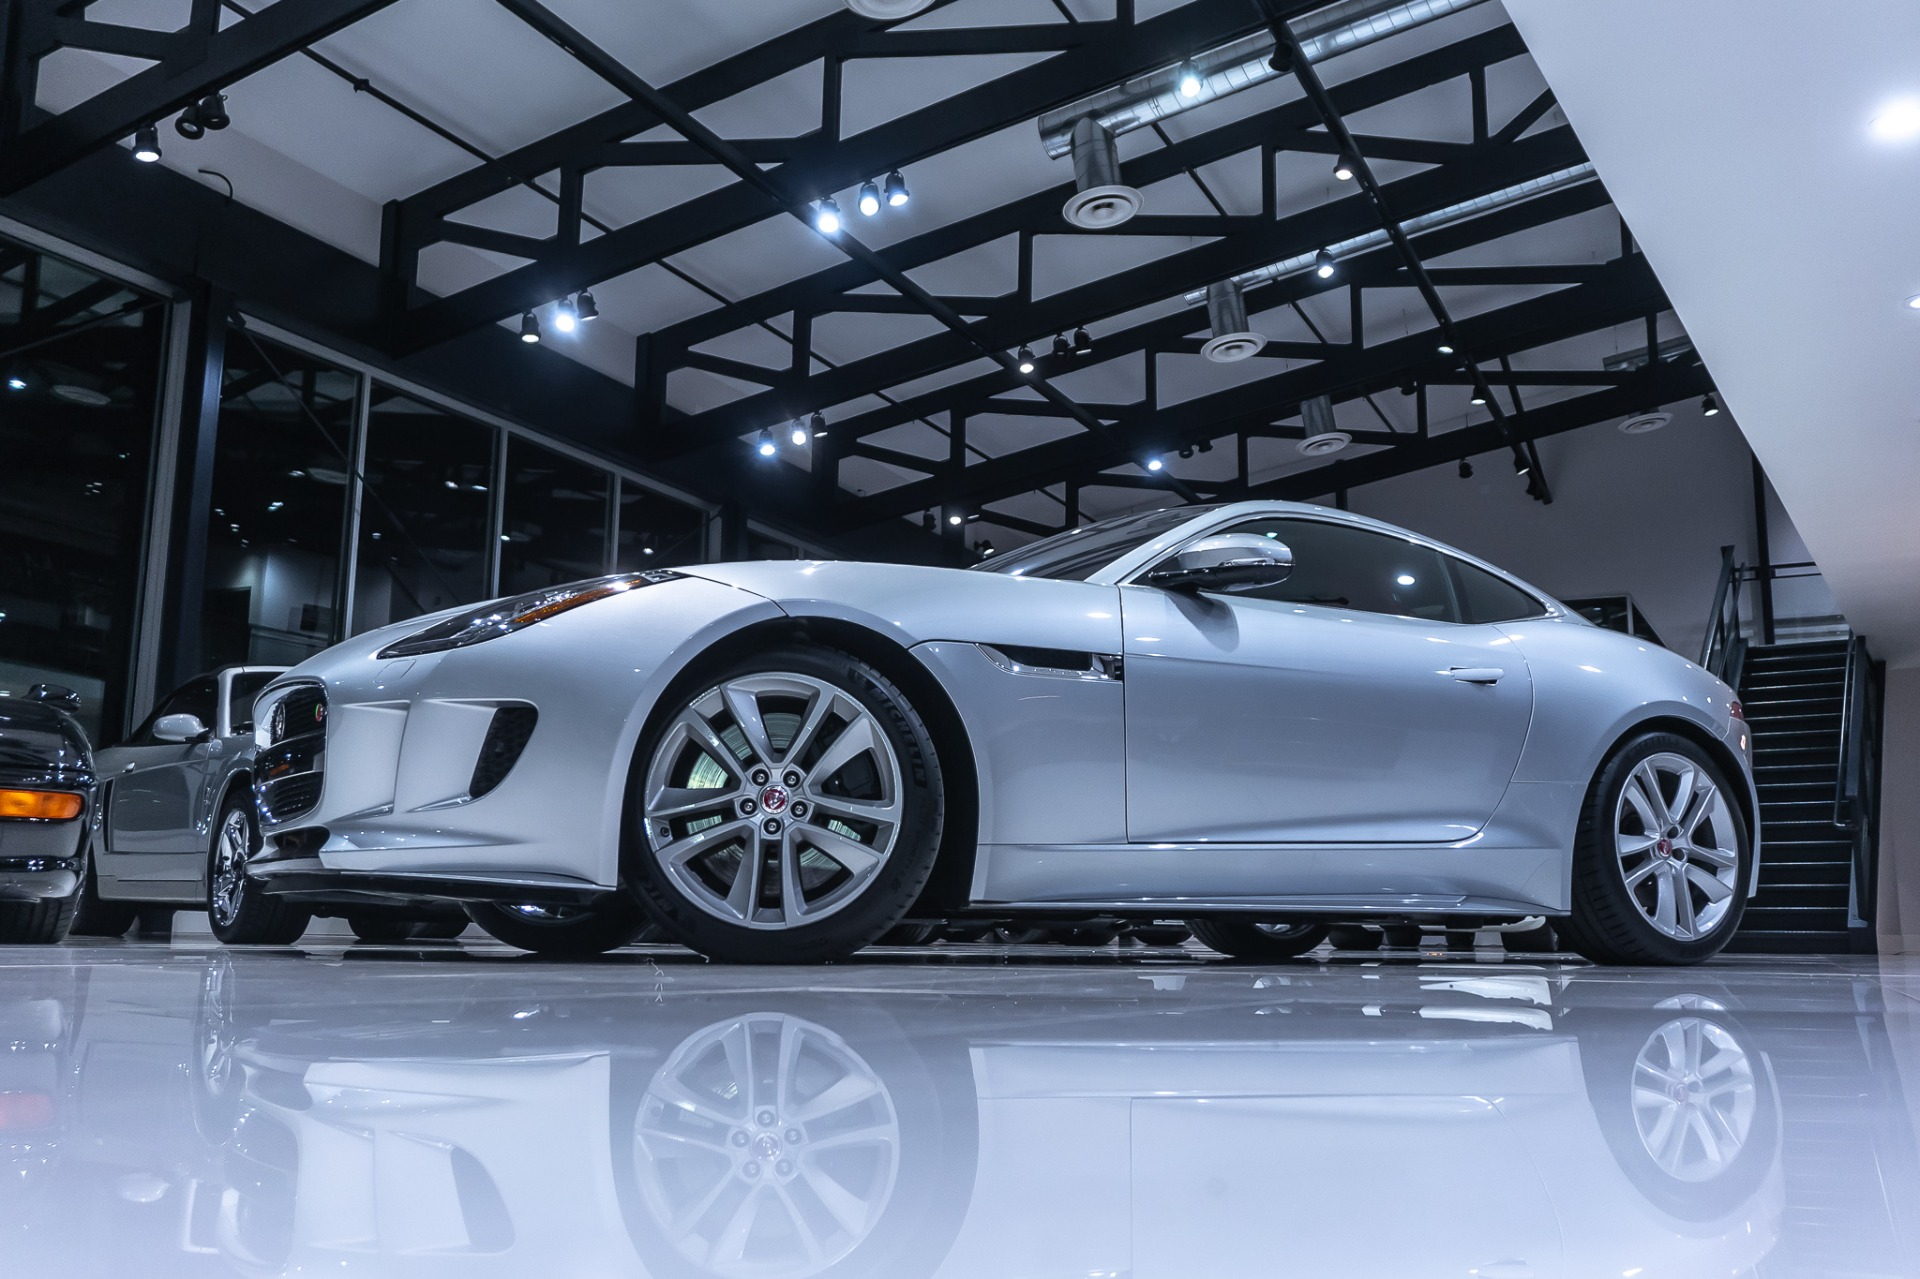 Used-2017-Jaguar-F-TYPE-S-AWD-Coupe-Only-13K-Miles-PERFORMANCE-SEATS-SUPERCHARGED